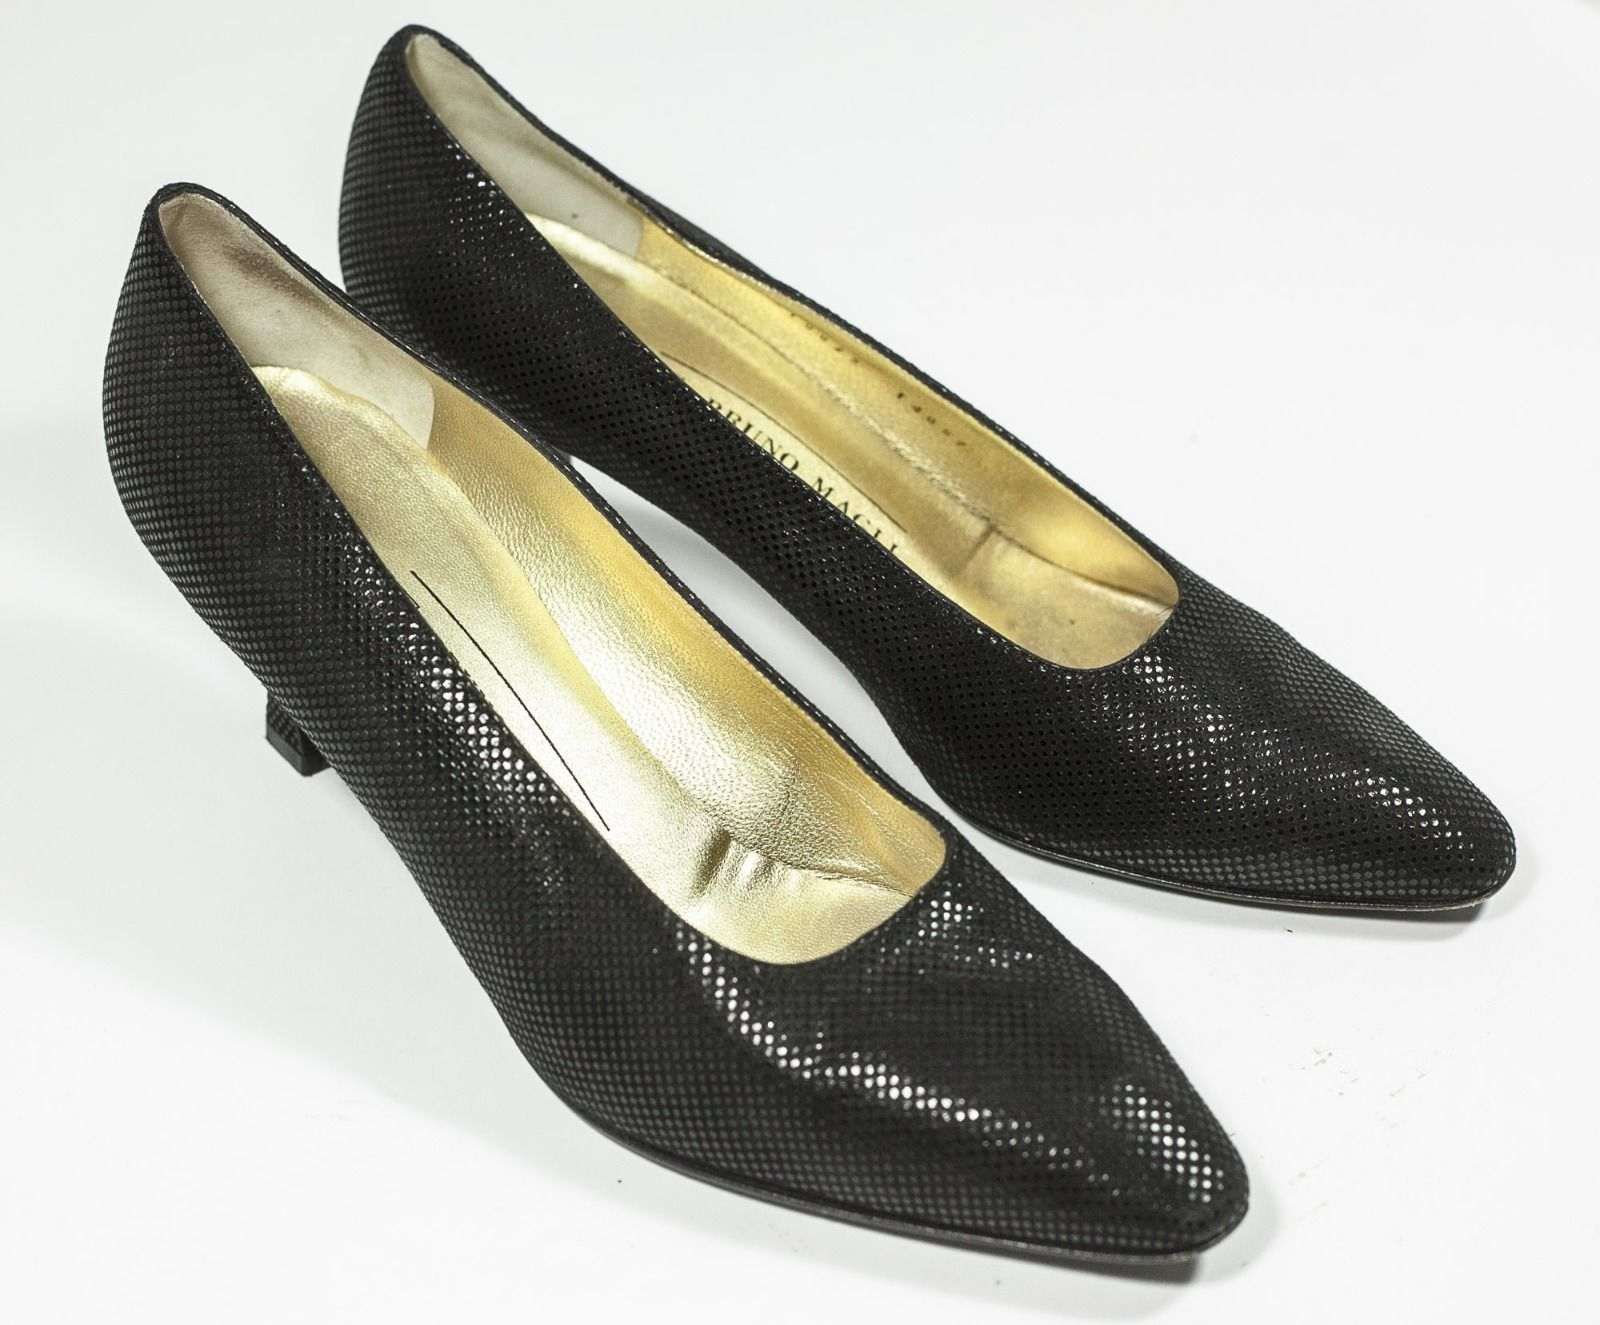 ff894378038 Bruno Magli Womens Pumps Black Shoes Size 10 AA -  42.75